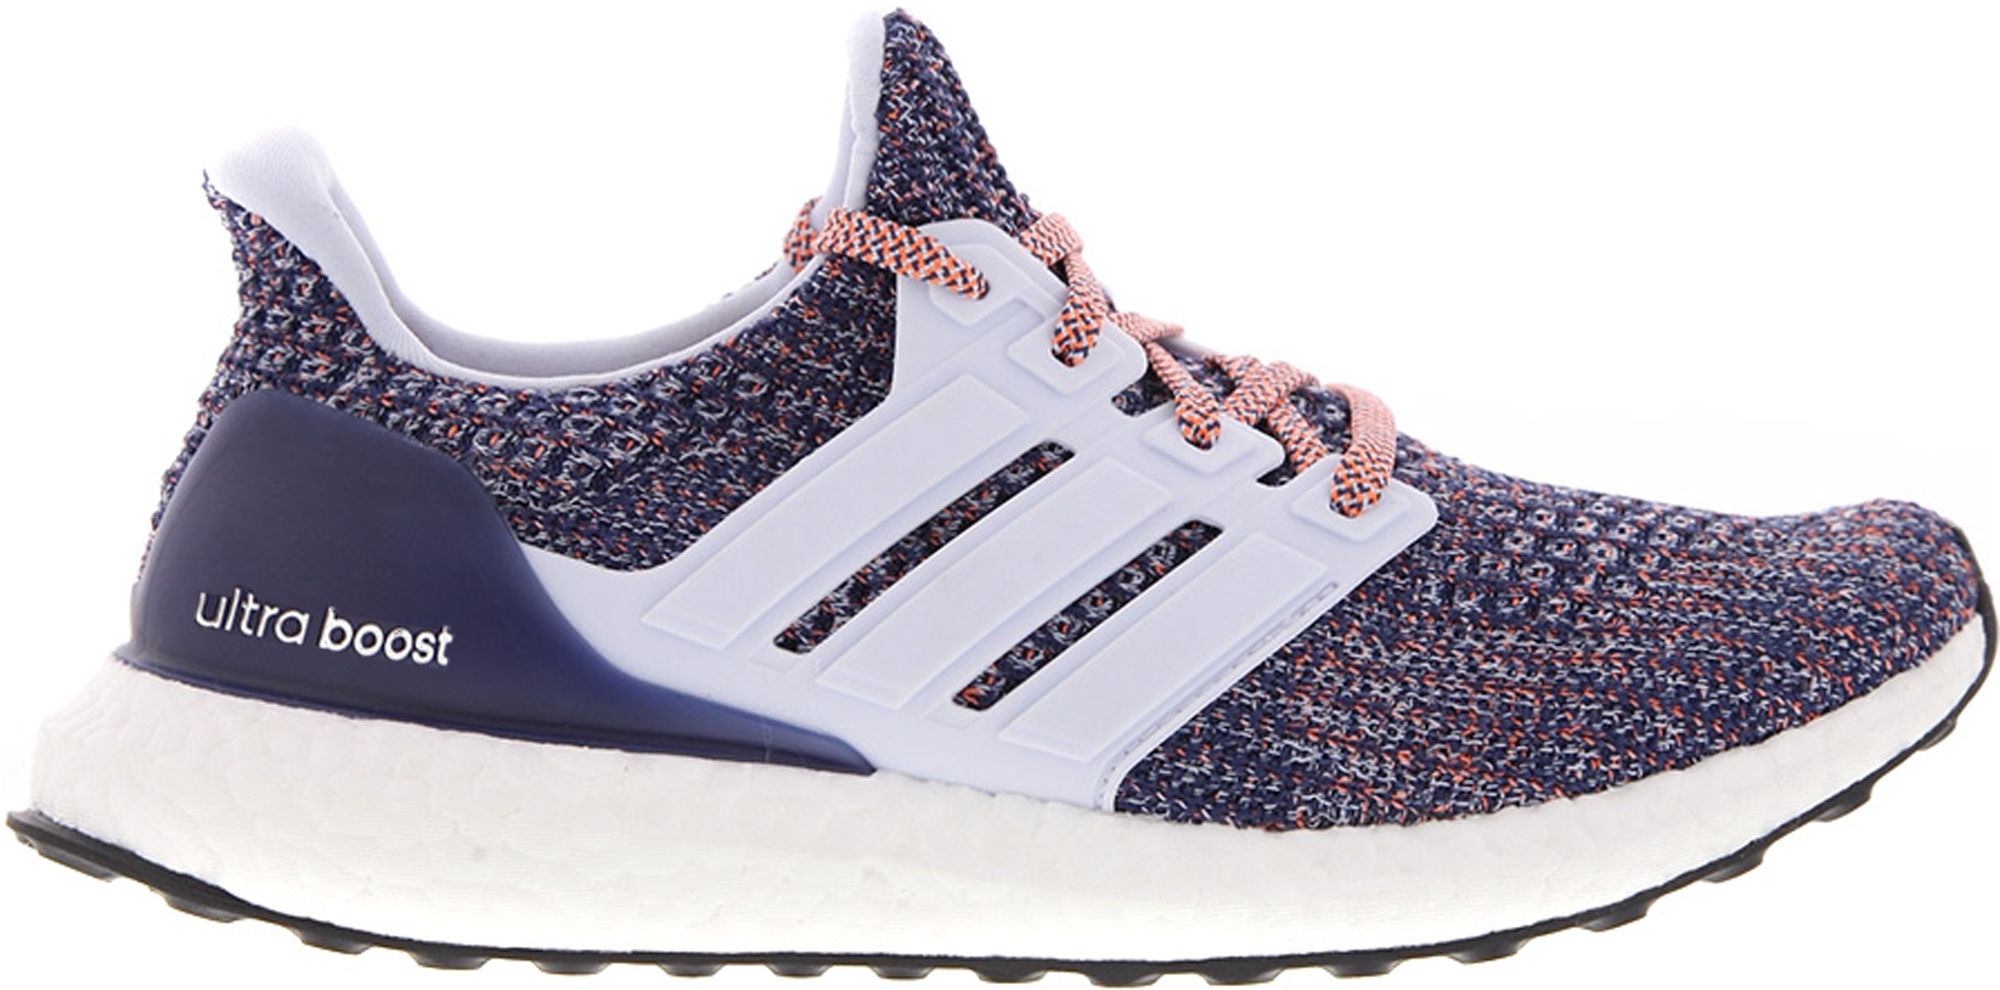 e37870bf0 Women s adidas Ultra Boost 4.0 Multi-Color - StockX News